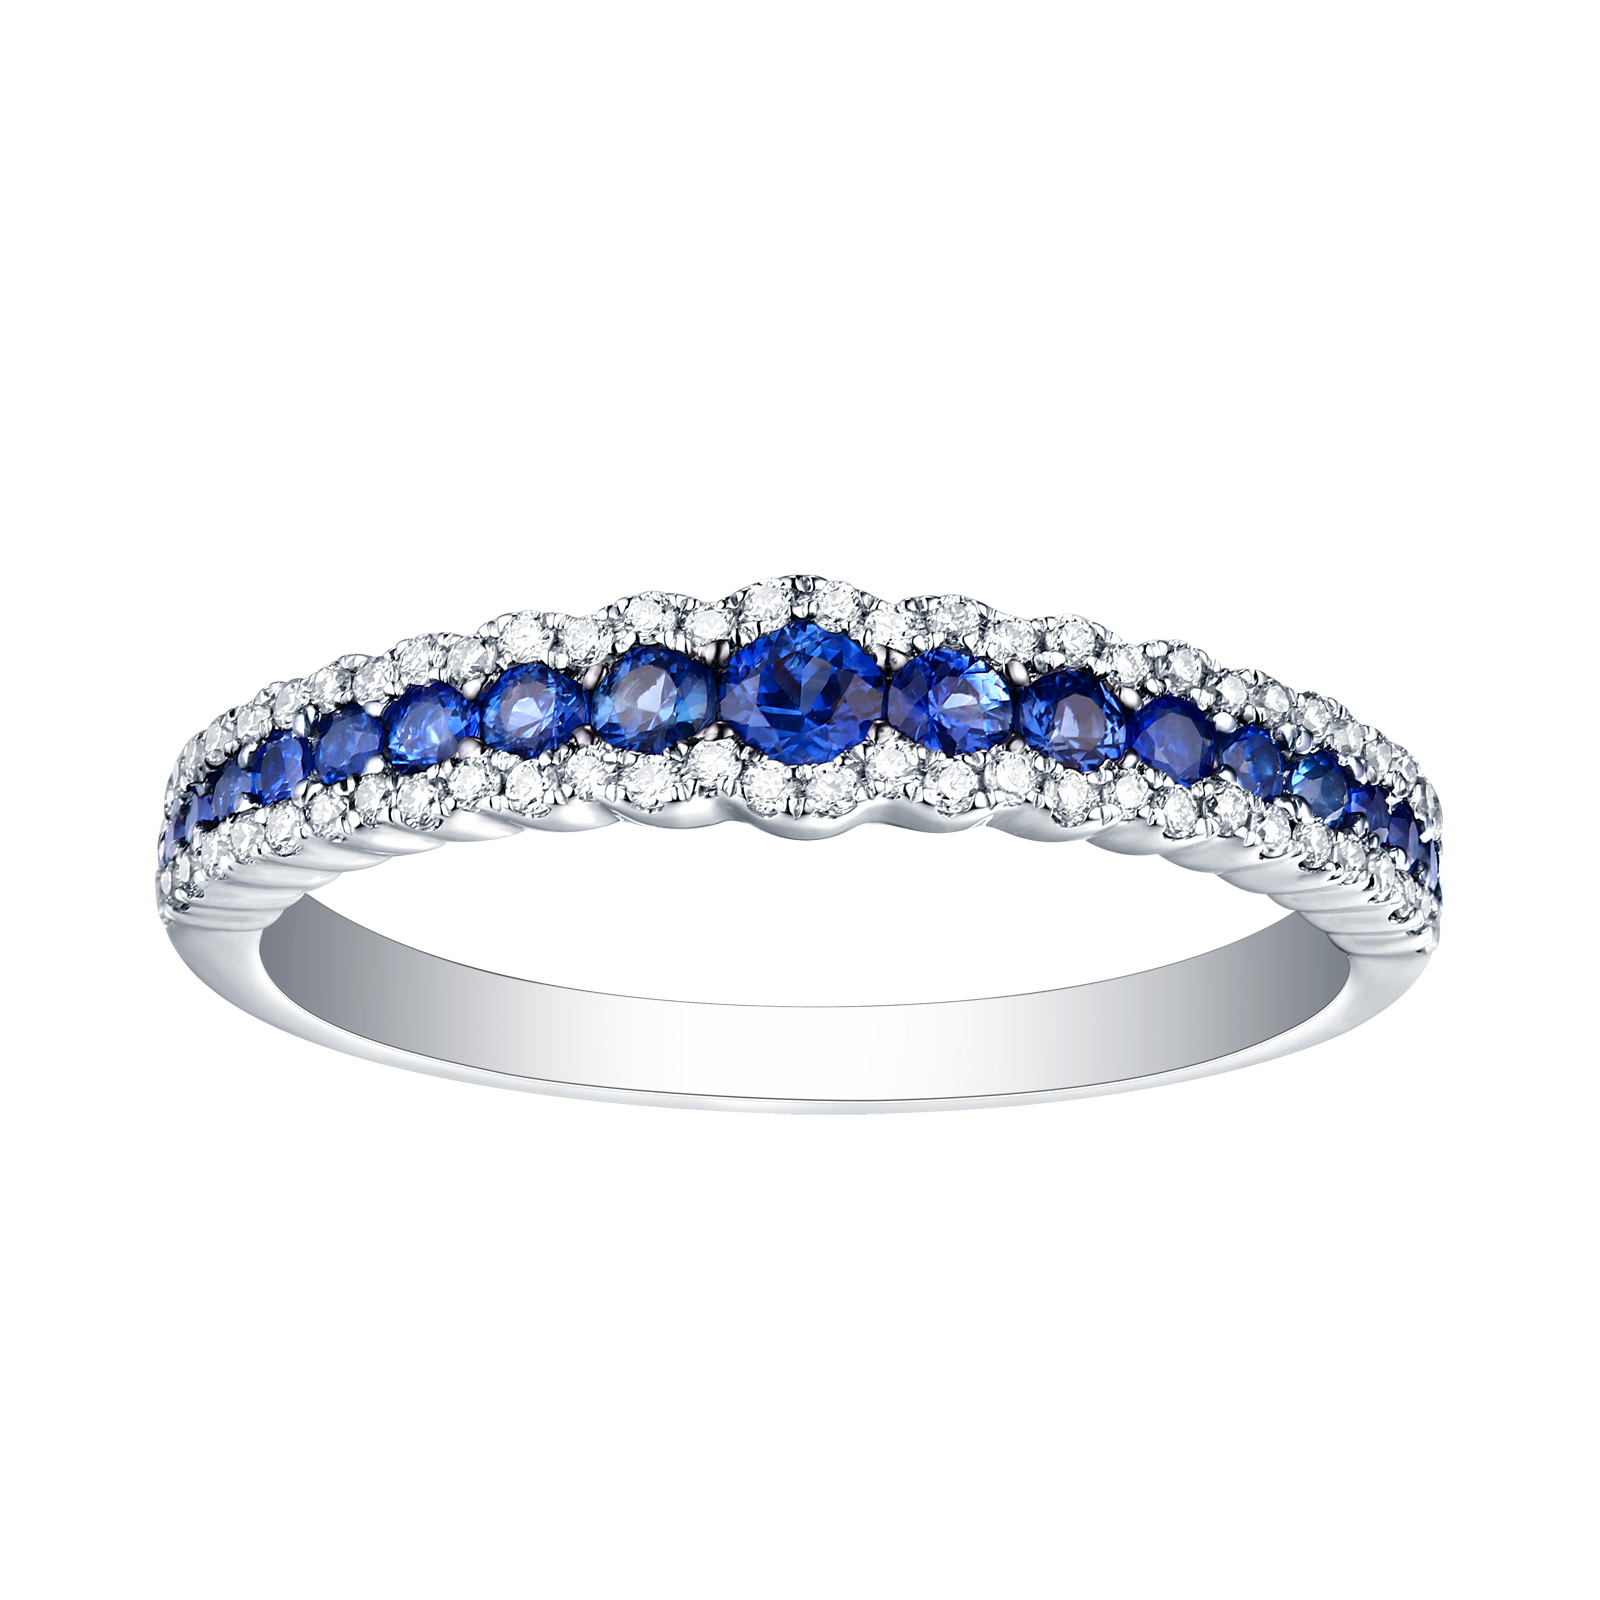 R22808BSA – 14K White Gold Blue Sapphire and Diamond Ring, 0.64 TCW